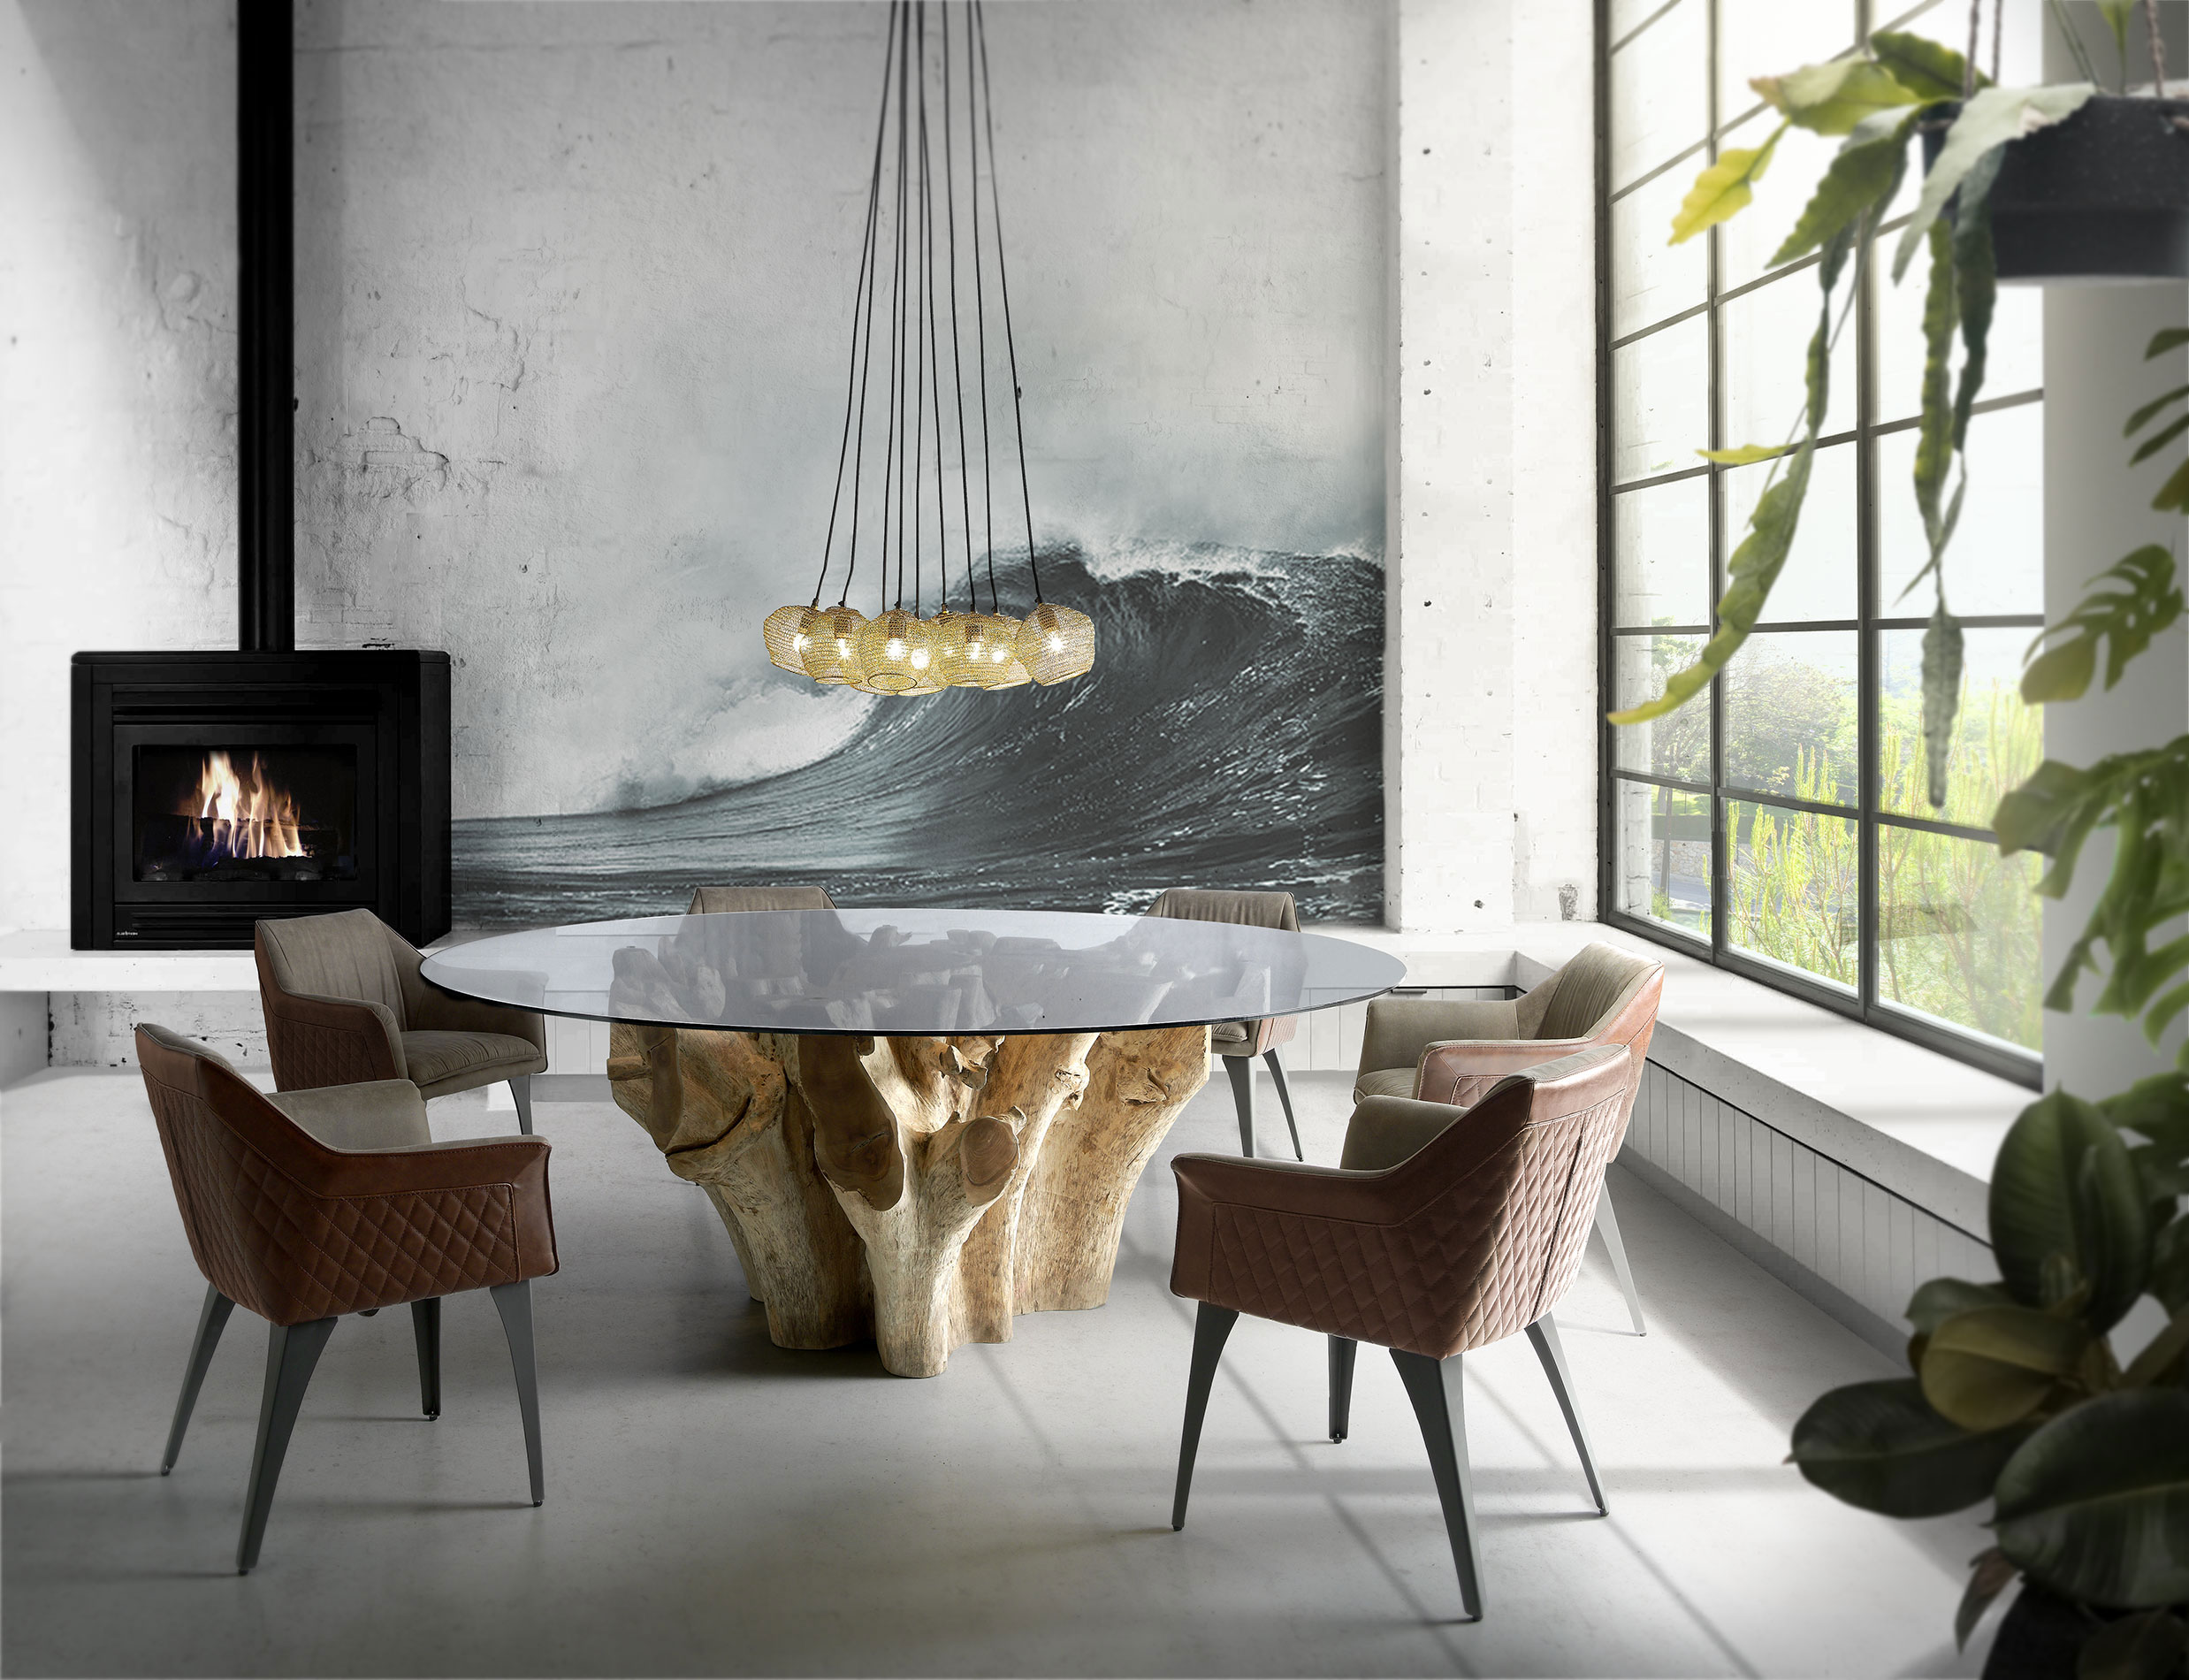 table, modern table,wooden legs table,round table, trapezi, chairs, karekles, dining table, kitchen table, andreotti, andreotti furniture, epipla, furniture, limassol, cyprus